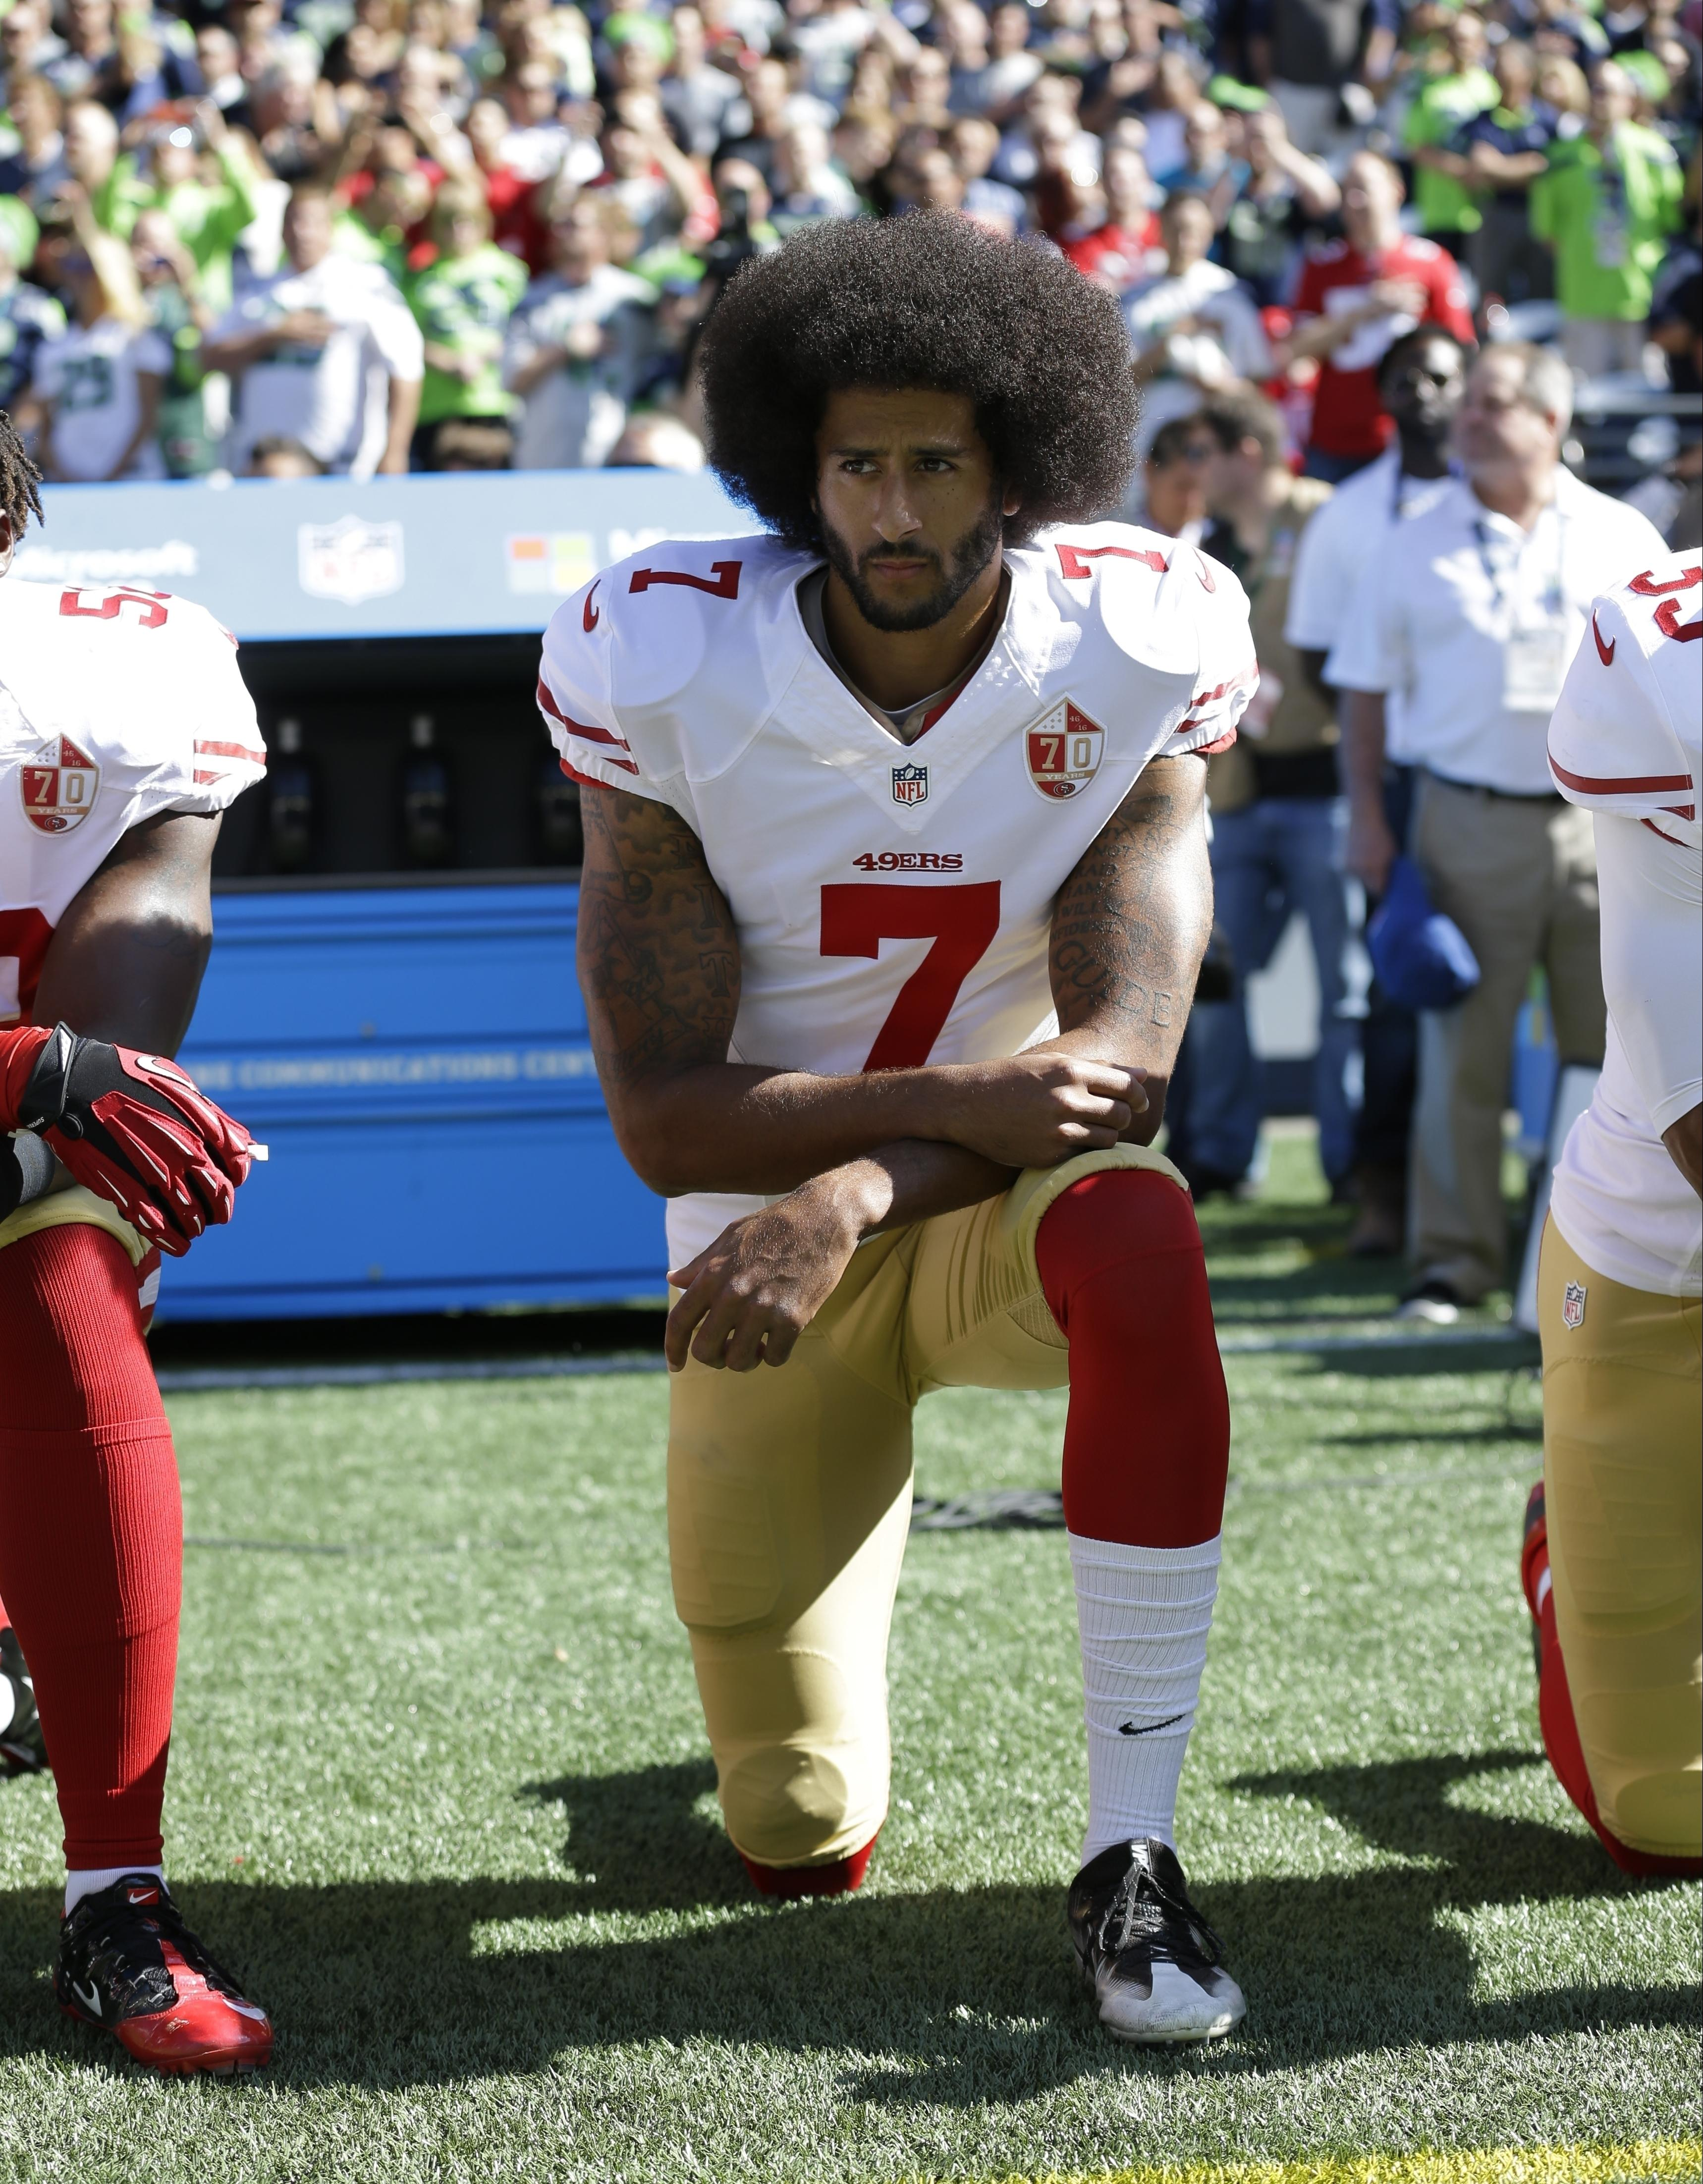 Colin Kaepernick was the first NFL star to kneel during anthems